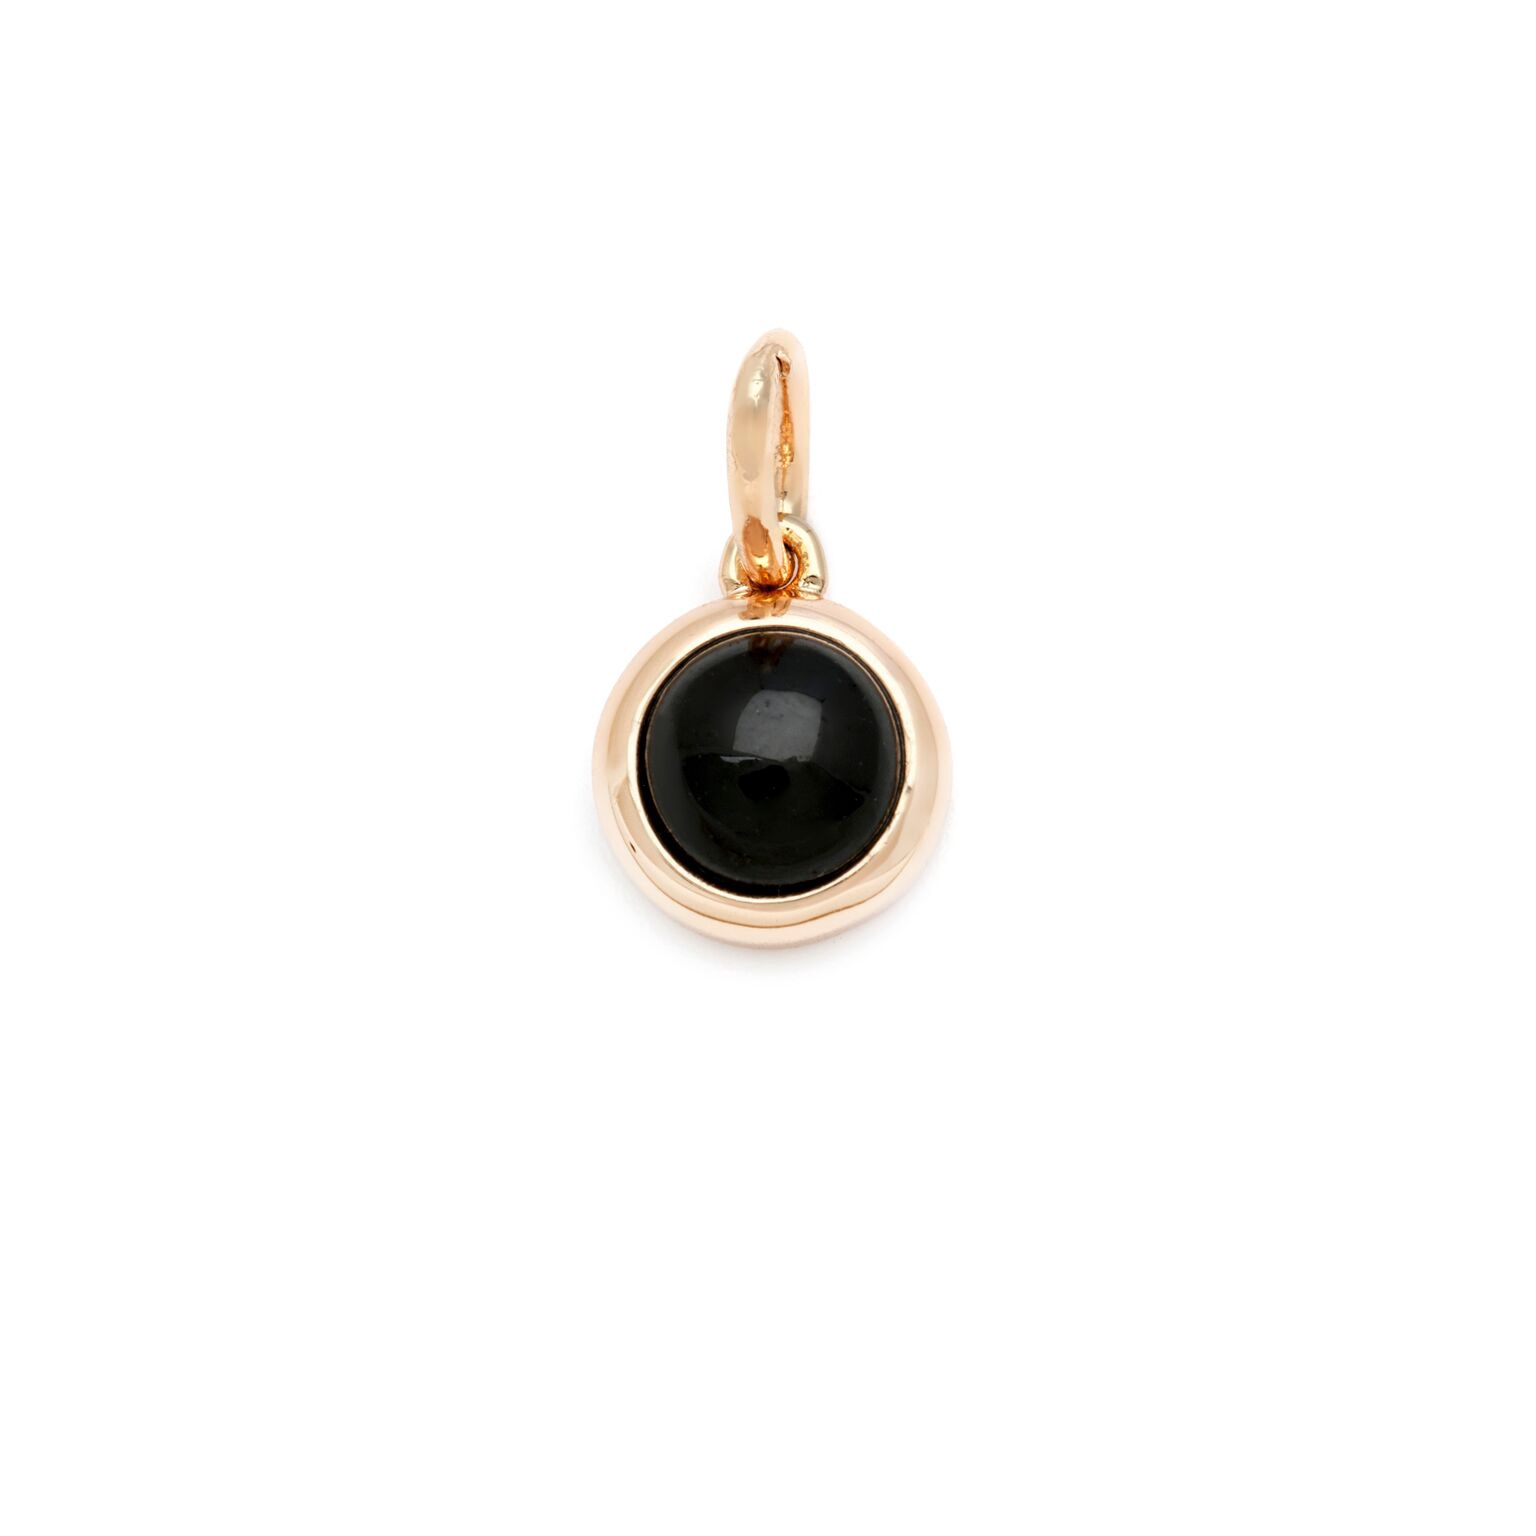 ADORNED-DESIGN YOUR OWN NECKLACE (GOLD)- BLACK ONYX CHARM